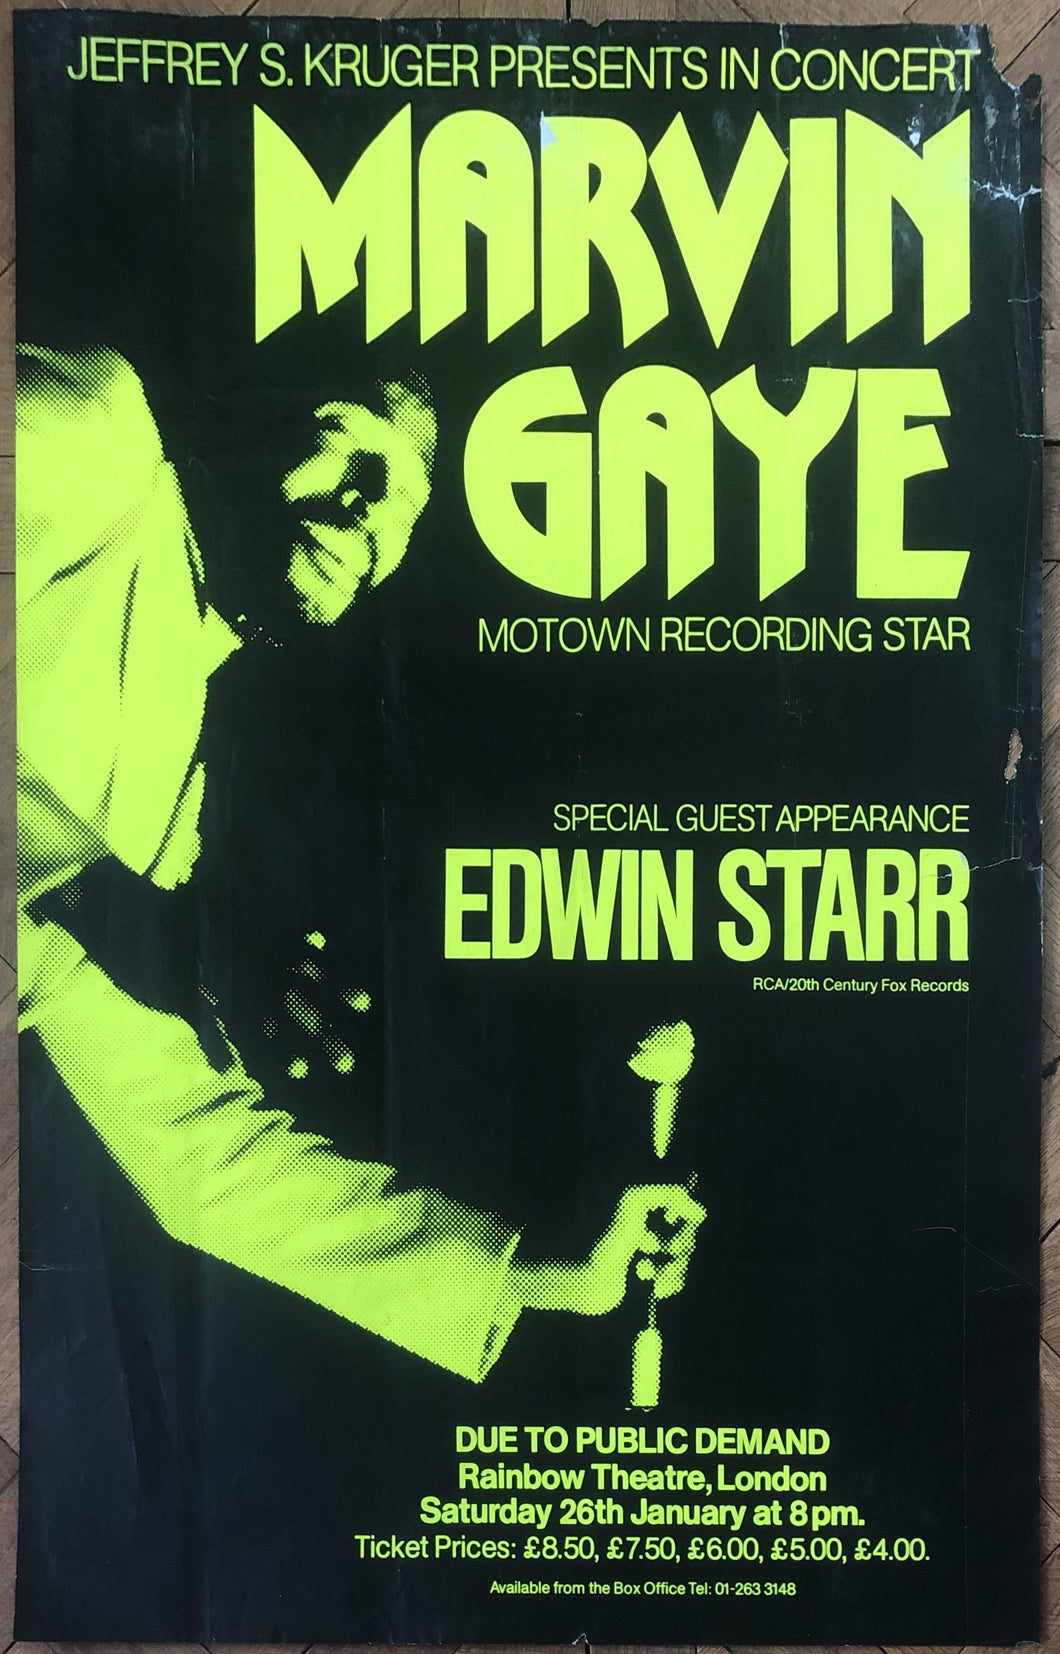 Marvin Gaye Edwin Starr Original Concert Tour Gig Poster Rainbow Theatre London 26th Jan 1980